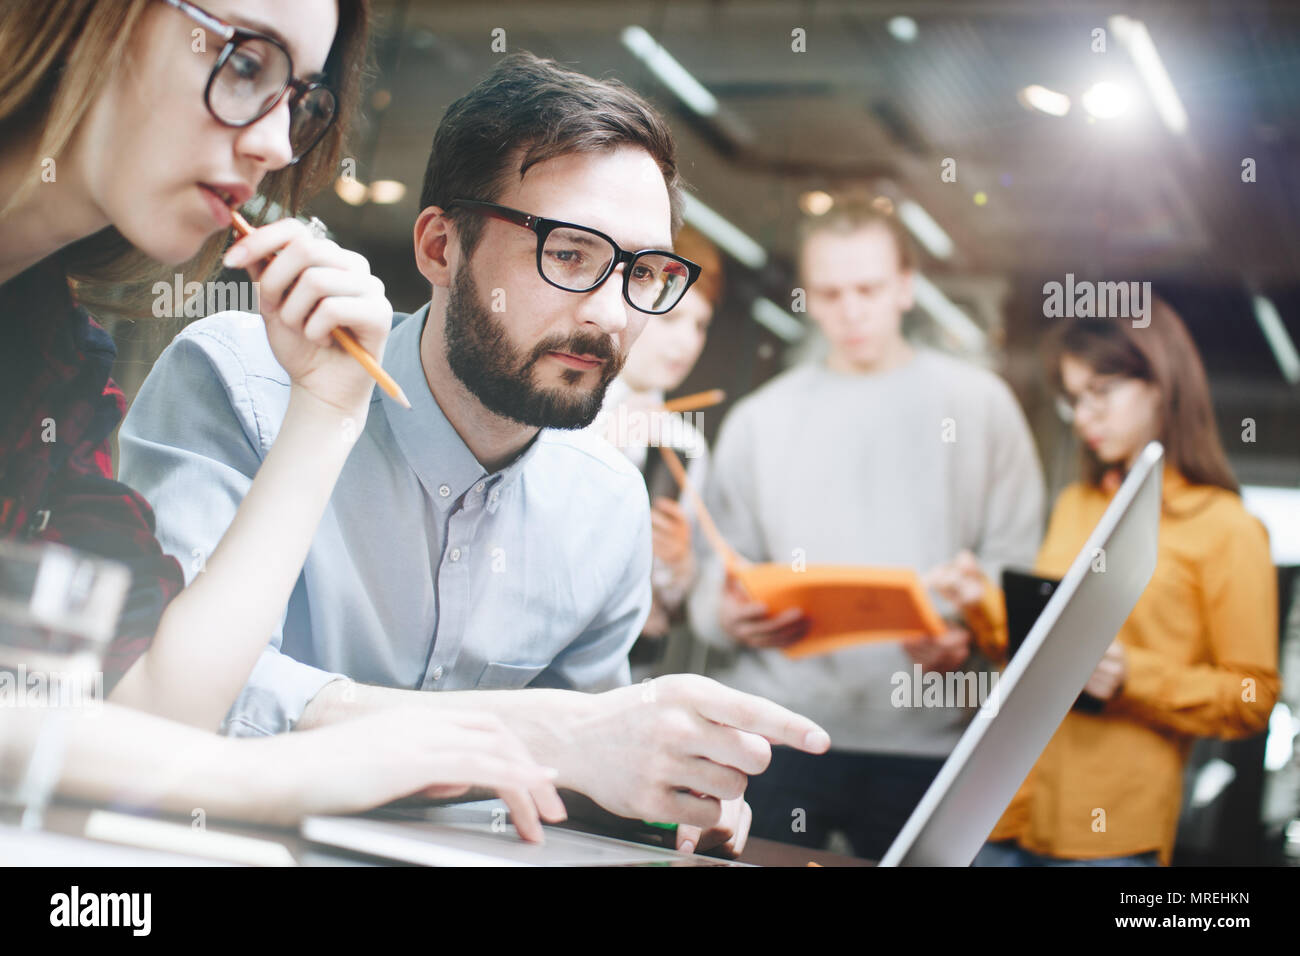 Business team working on a new project on a laptop. Discussion of a new work plan. A woman with glasses and a bearded man discussing a startup plan - Stock Image